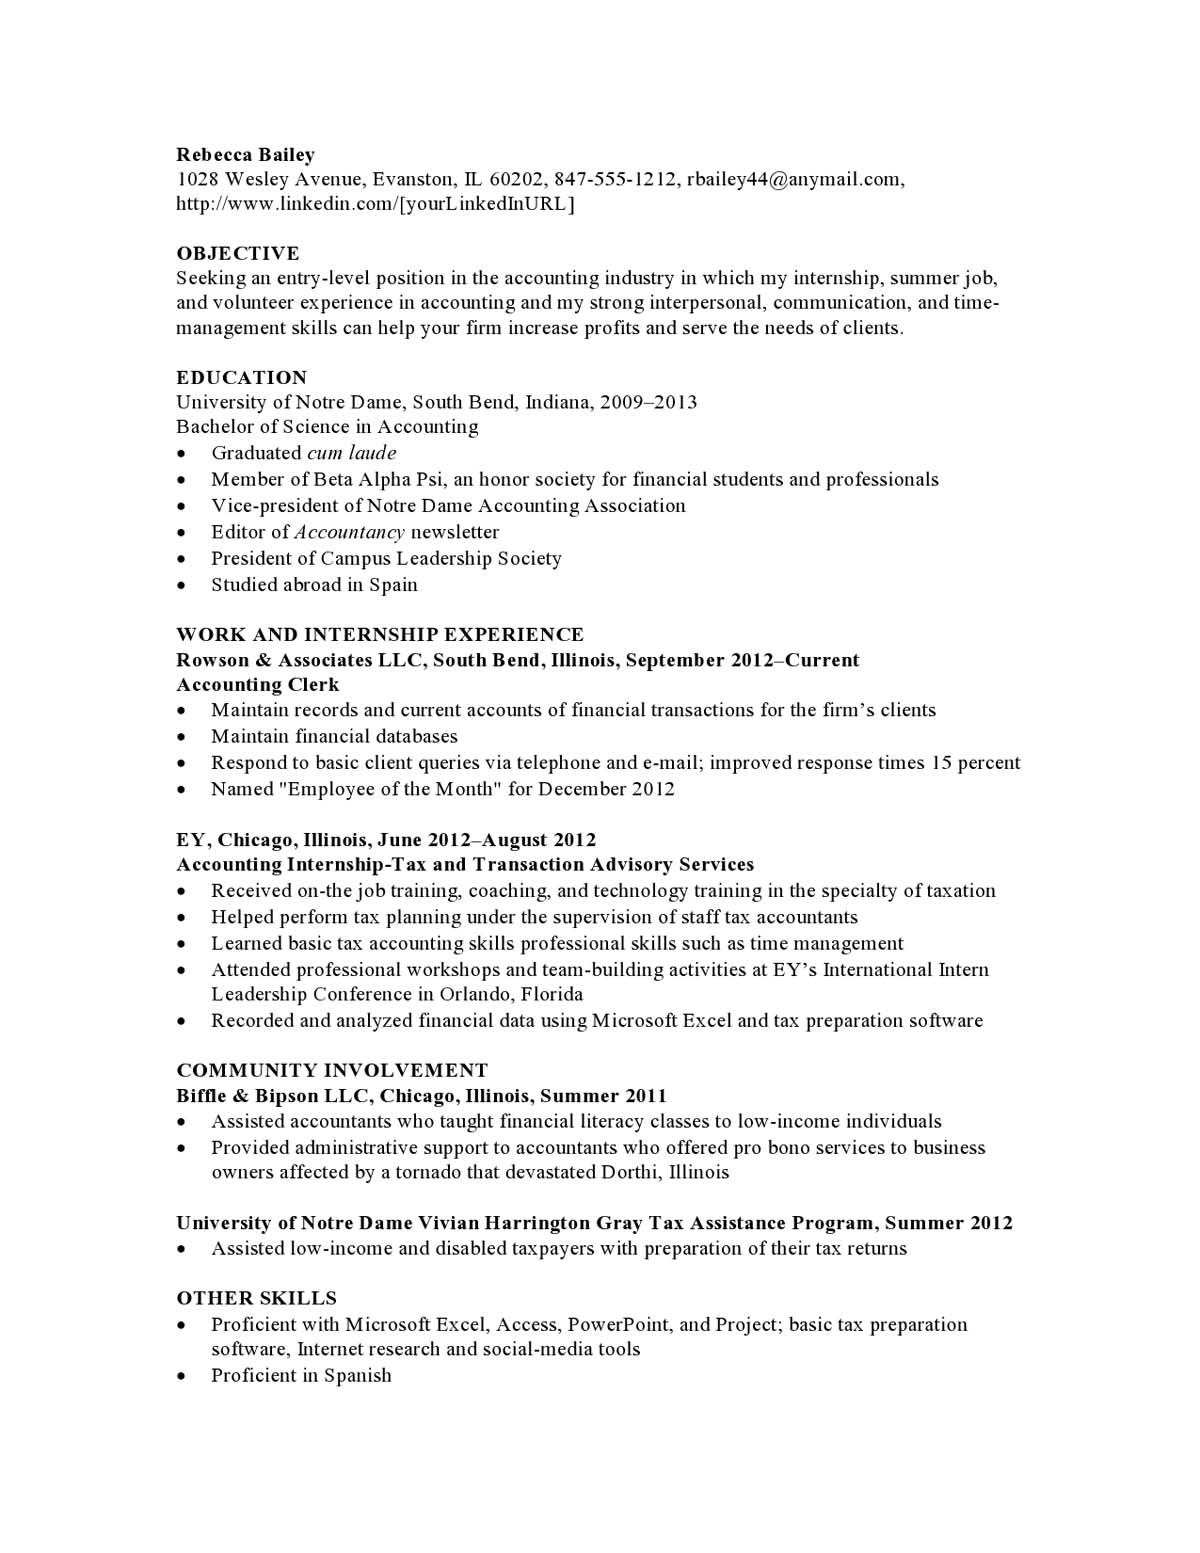 resume samples templates examples vault experience professional crescoact19 paper walmart Resume Experience Professional Resume Examples